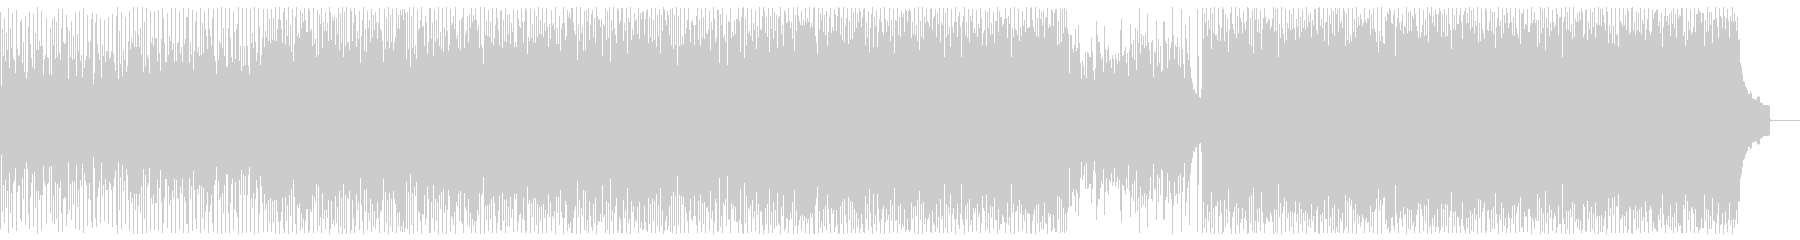 Positive sprinting Acoustic Guitar (corporate, commercial)'s unreproduced waveform